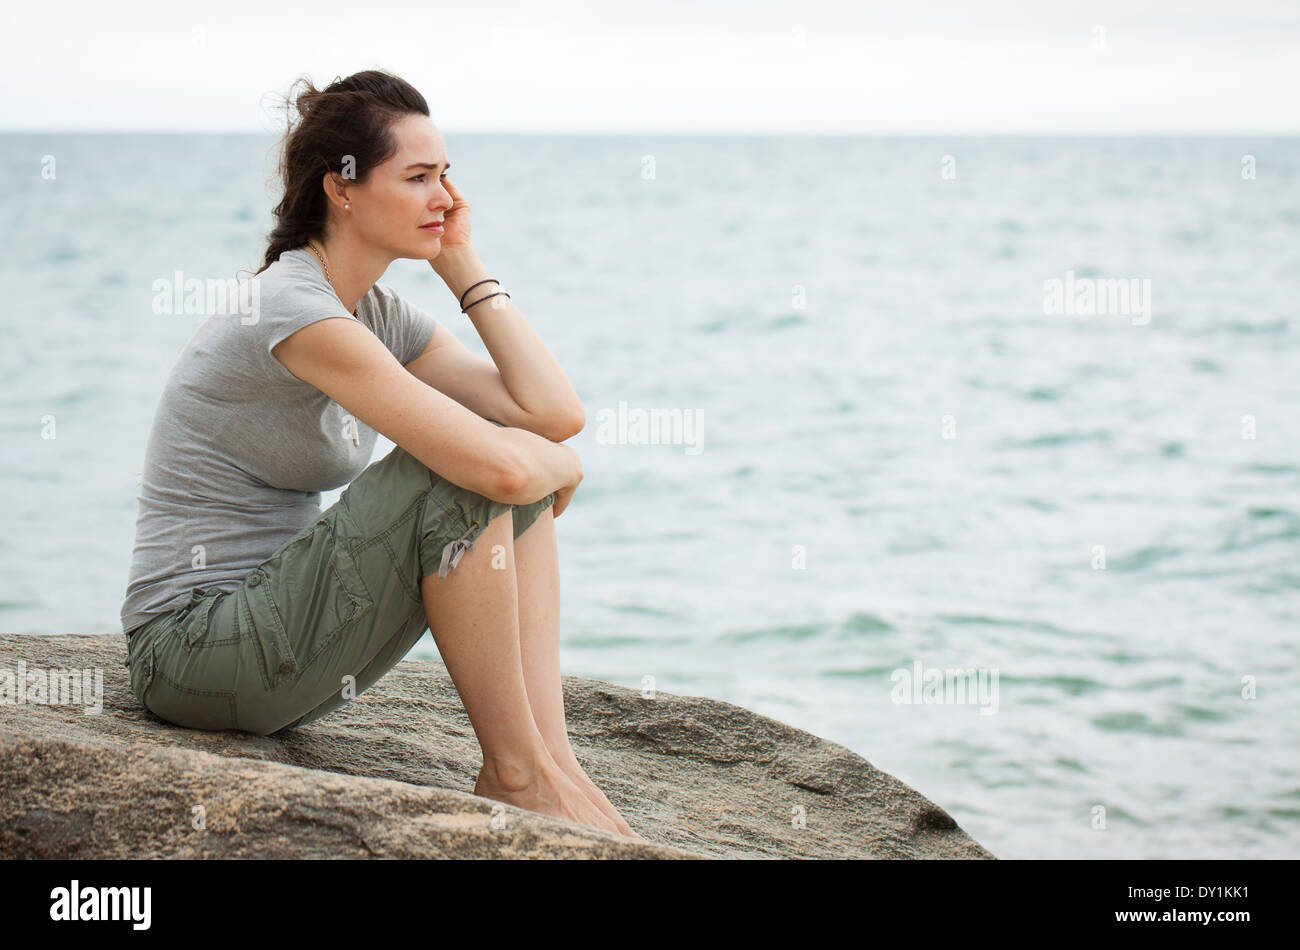 A sad and depressed woman sitting by the ocean deep in thought. - Stock Image